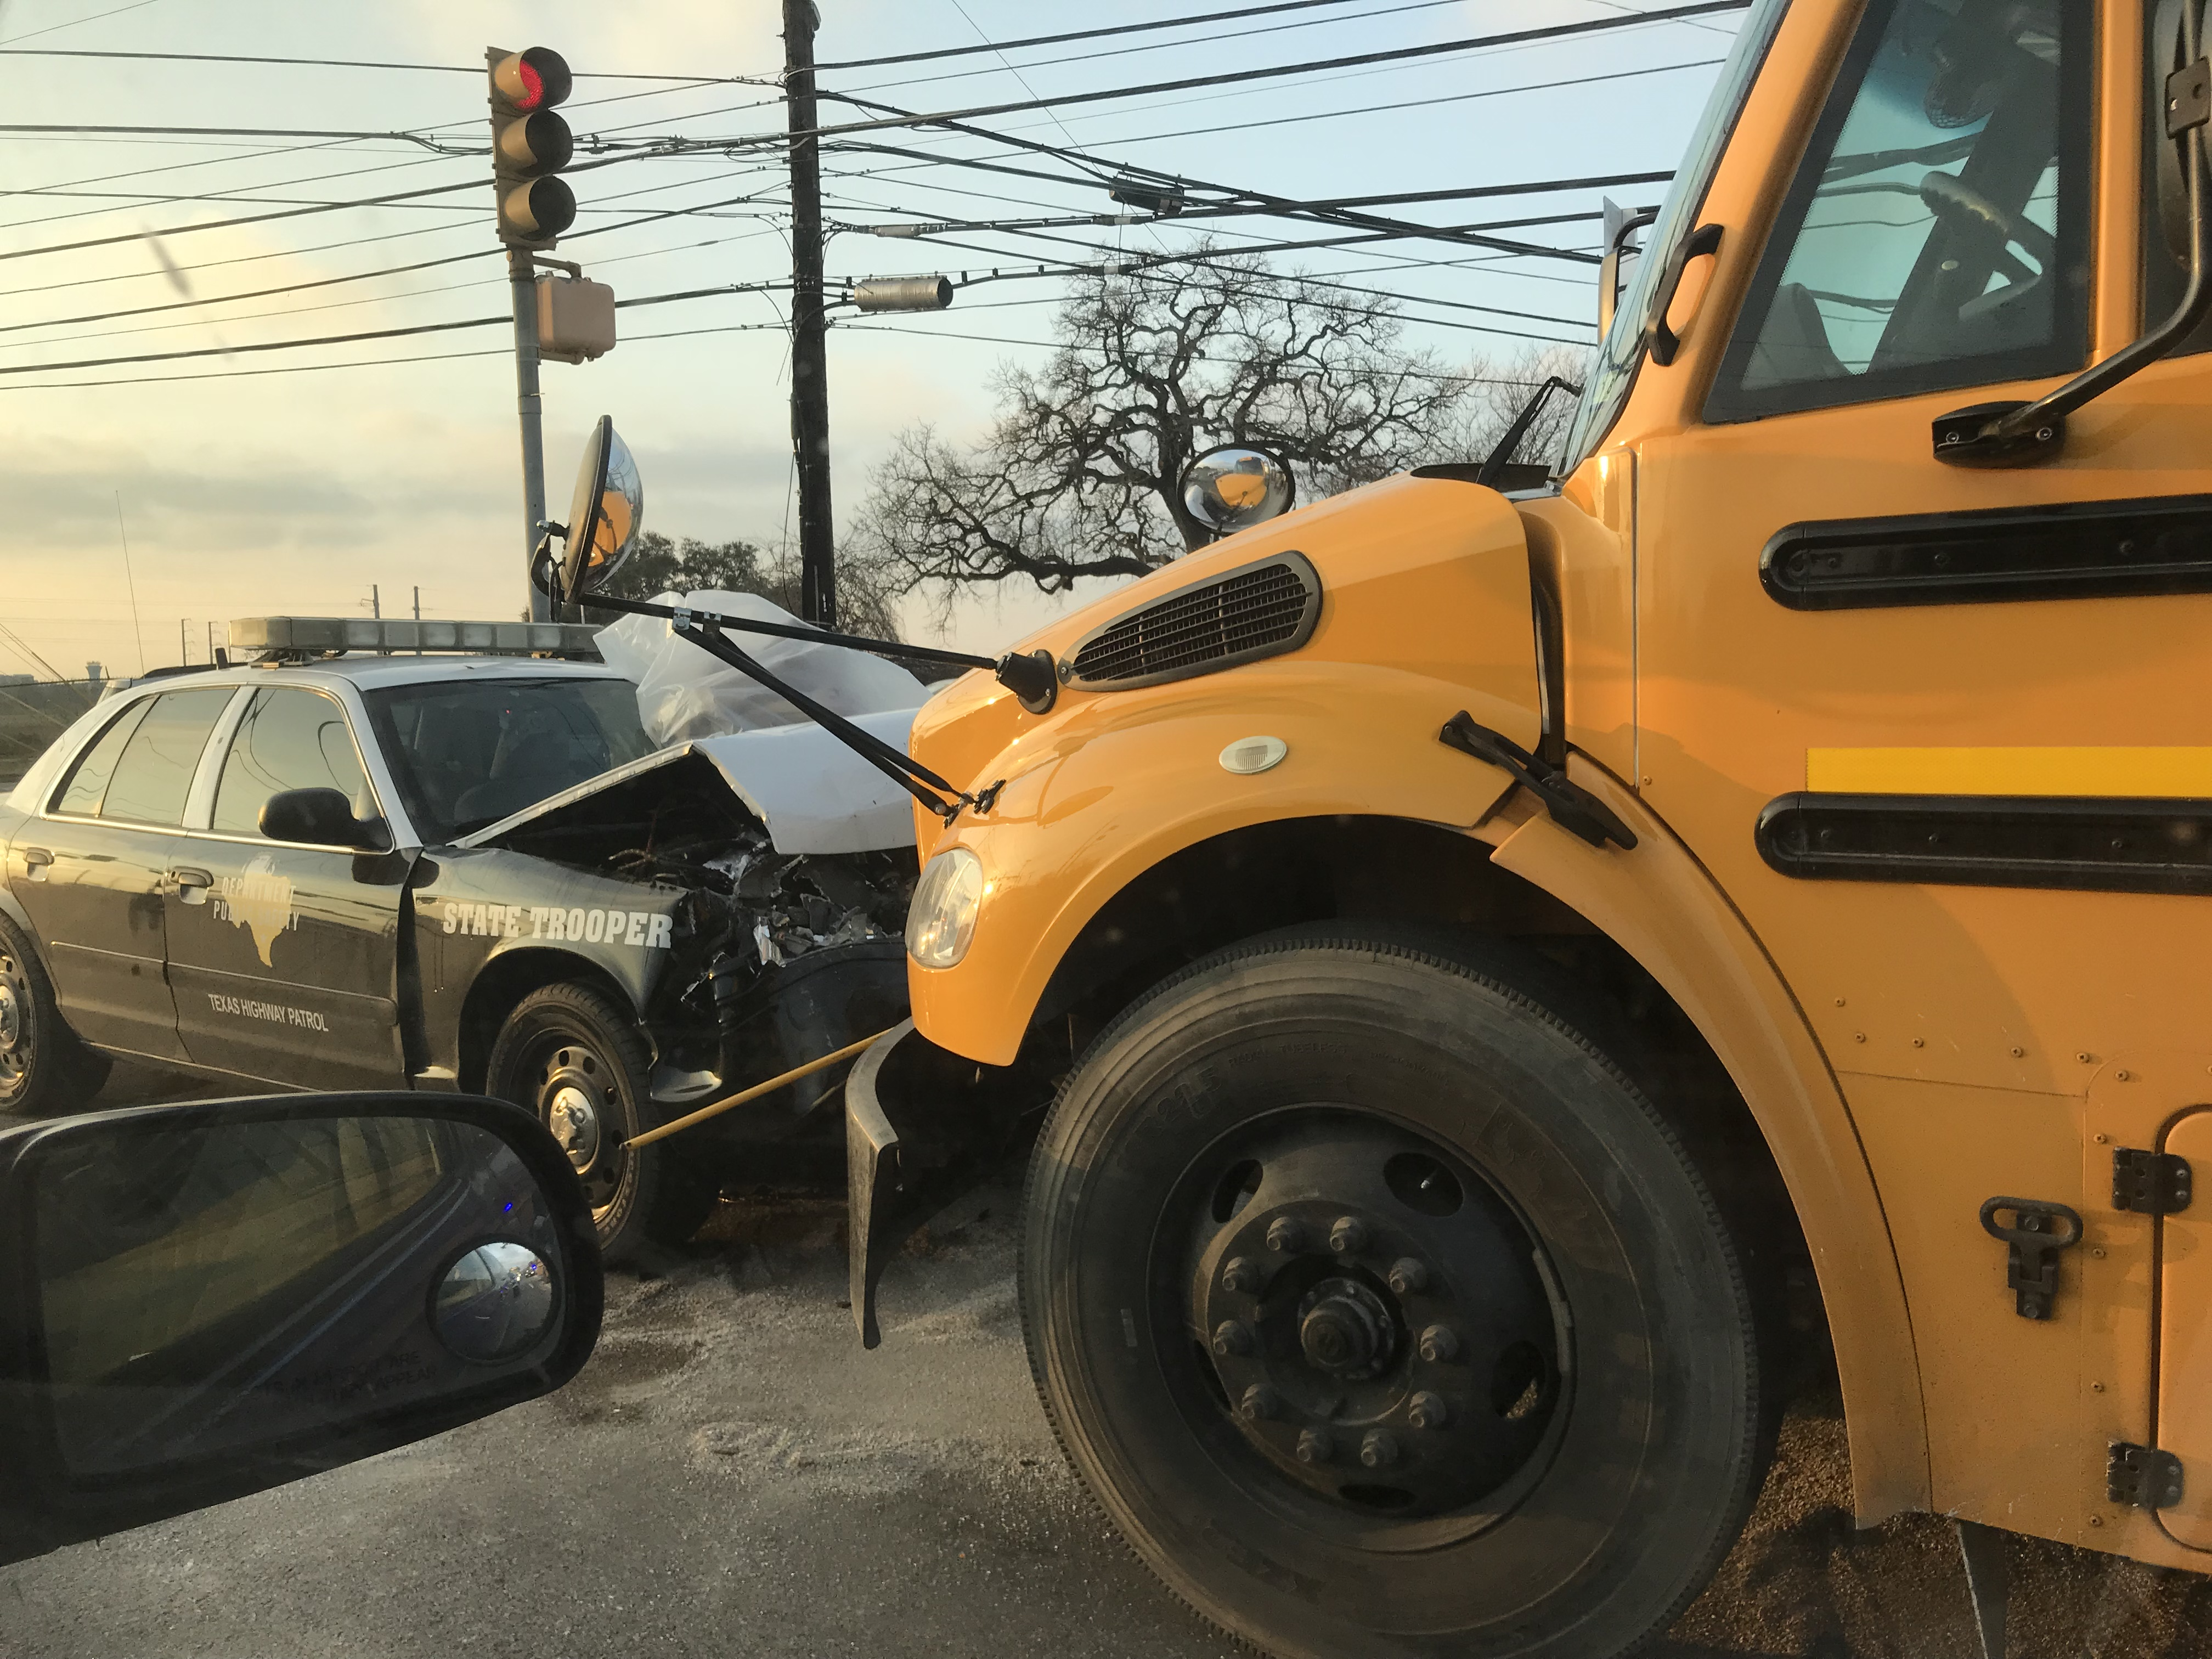 DPS trooper crashes with school bus, SUV in east Austin